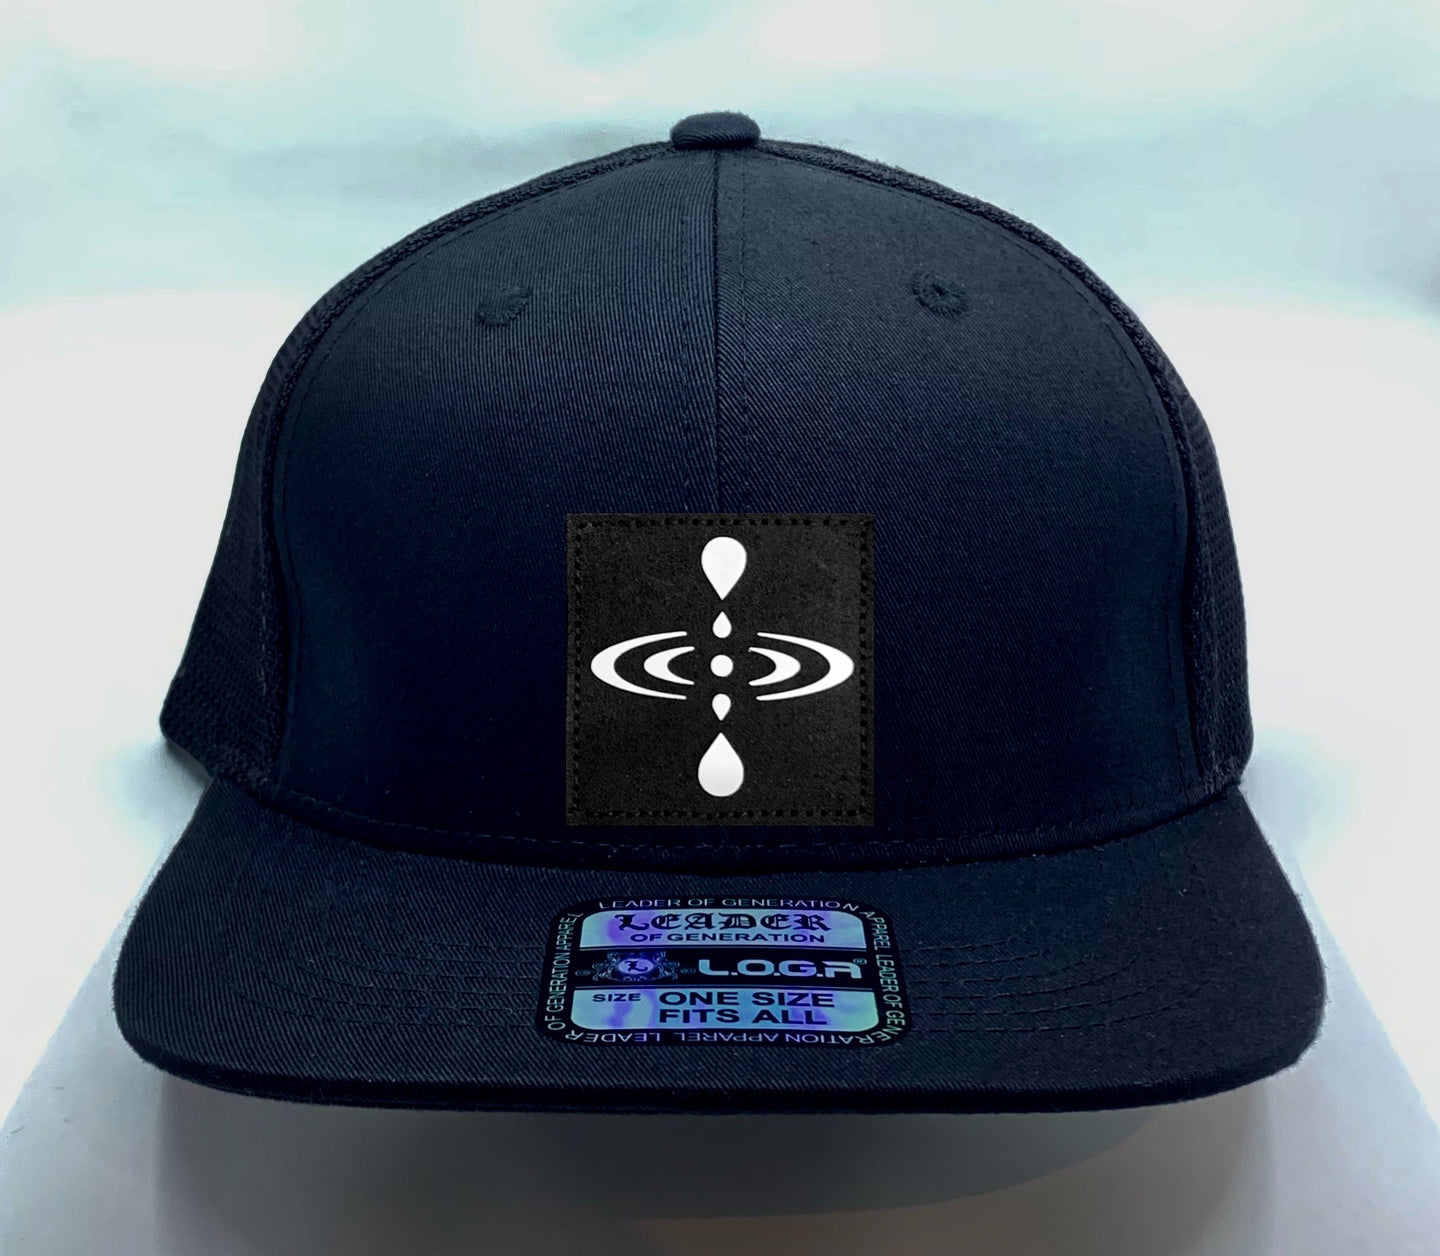 Buddha Gear beanies hats headbands face masks Murk.Wav Collective  [founded in 2018] Is a collective of music producers located in Northern UT, USA.  Inspired by the forward thinking vibrations of the music community we strive to connect with one another through dance, music, and solid bass lines.  Thank you for your support as we grow together through self expression.